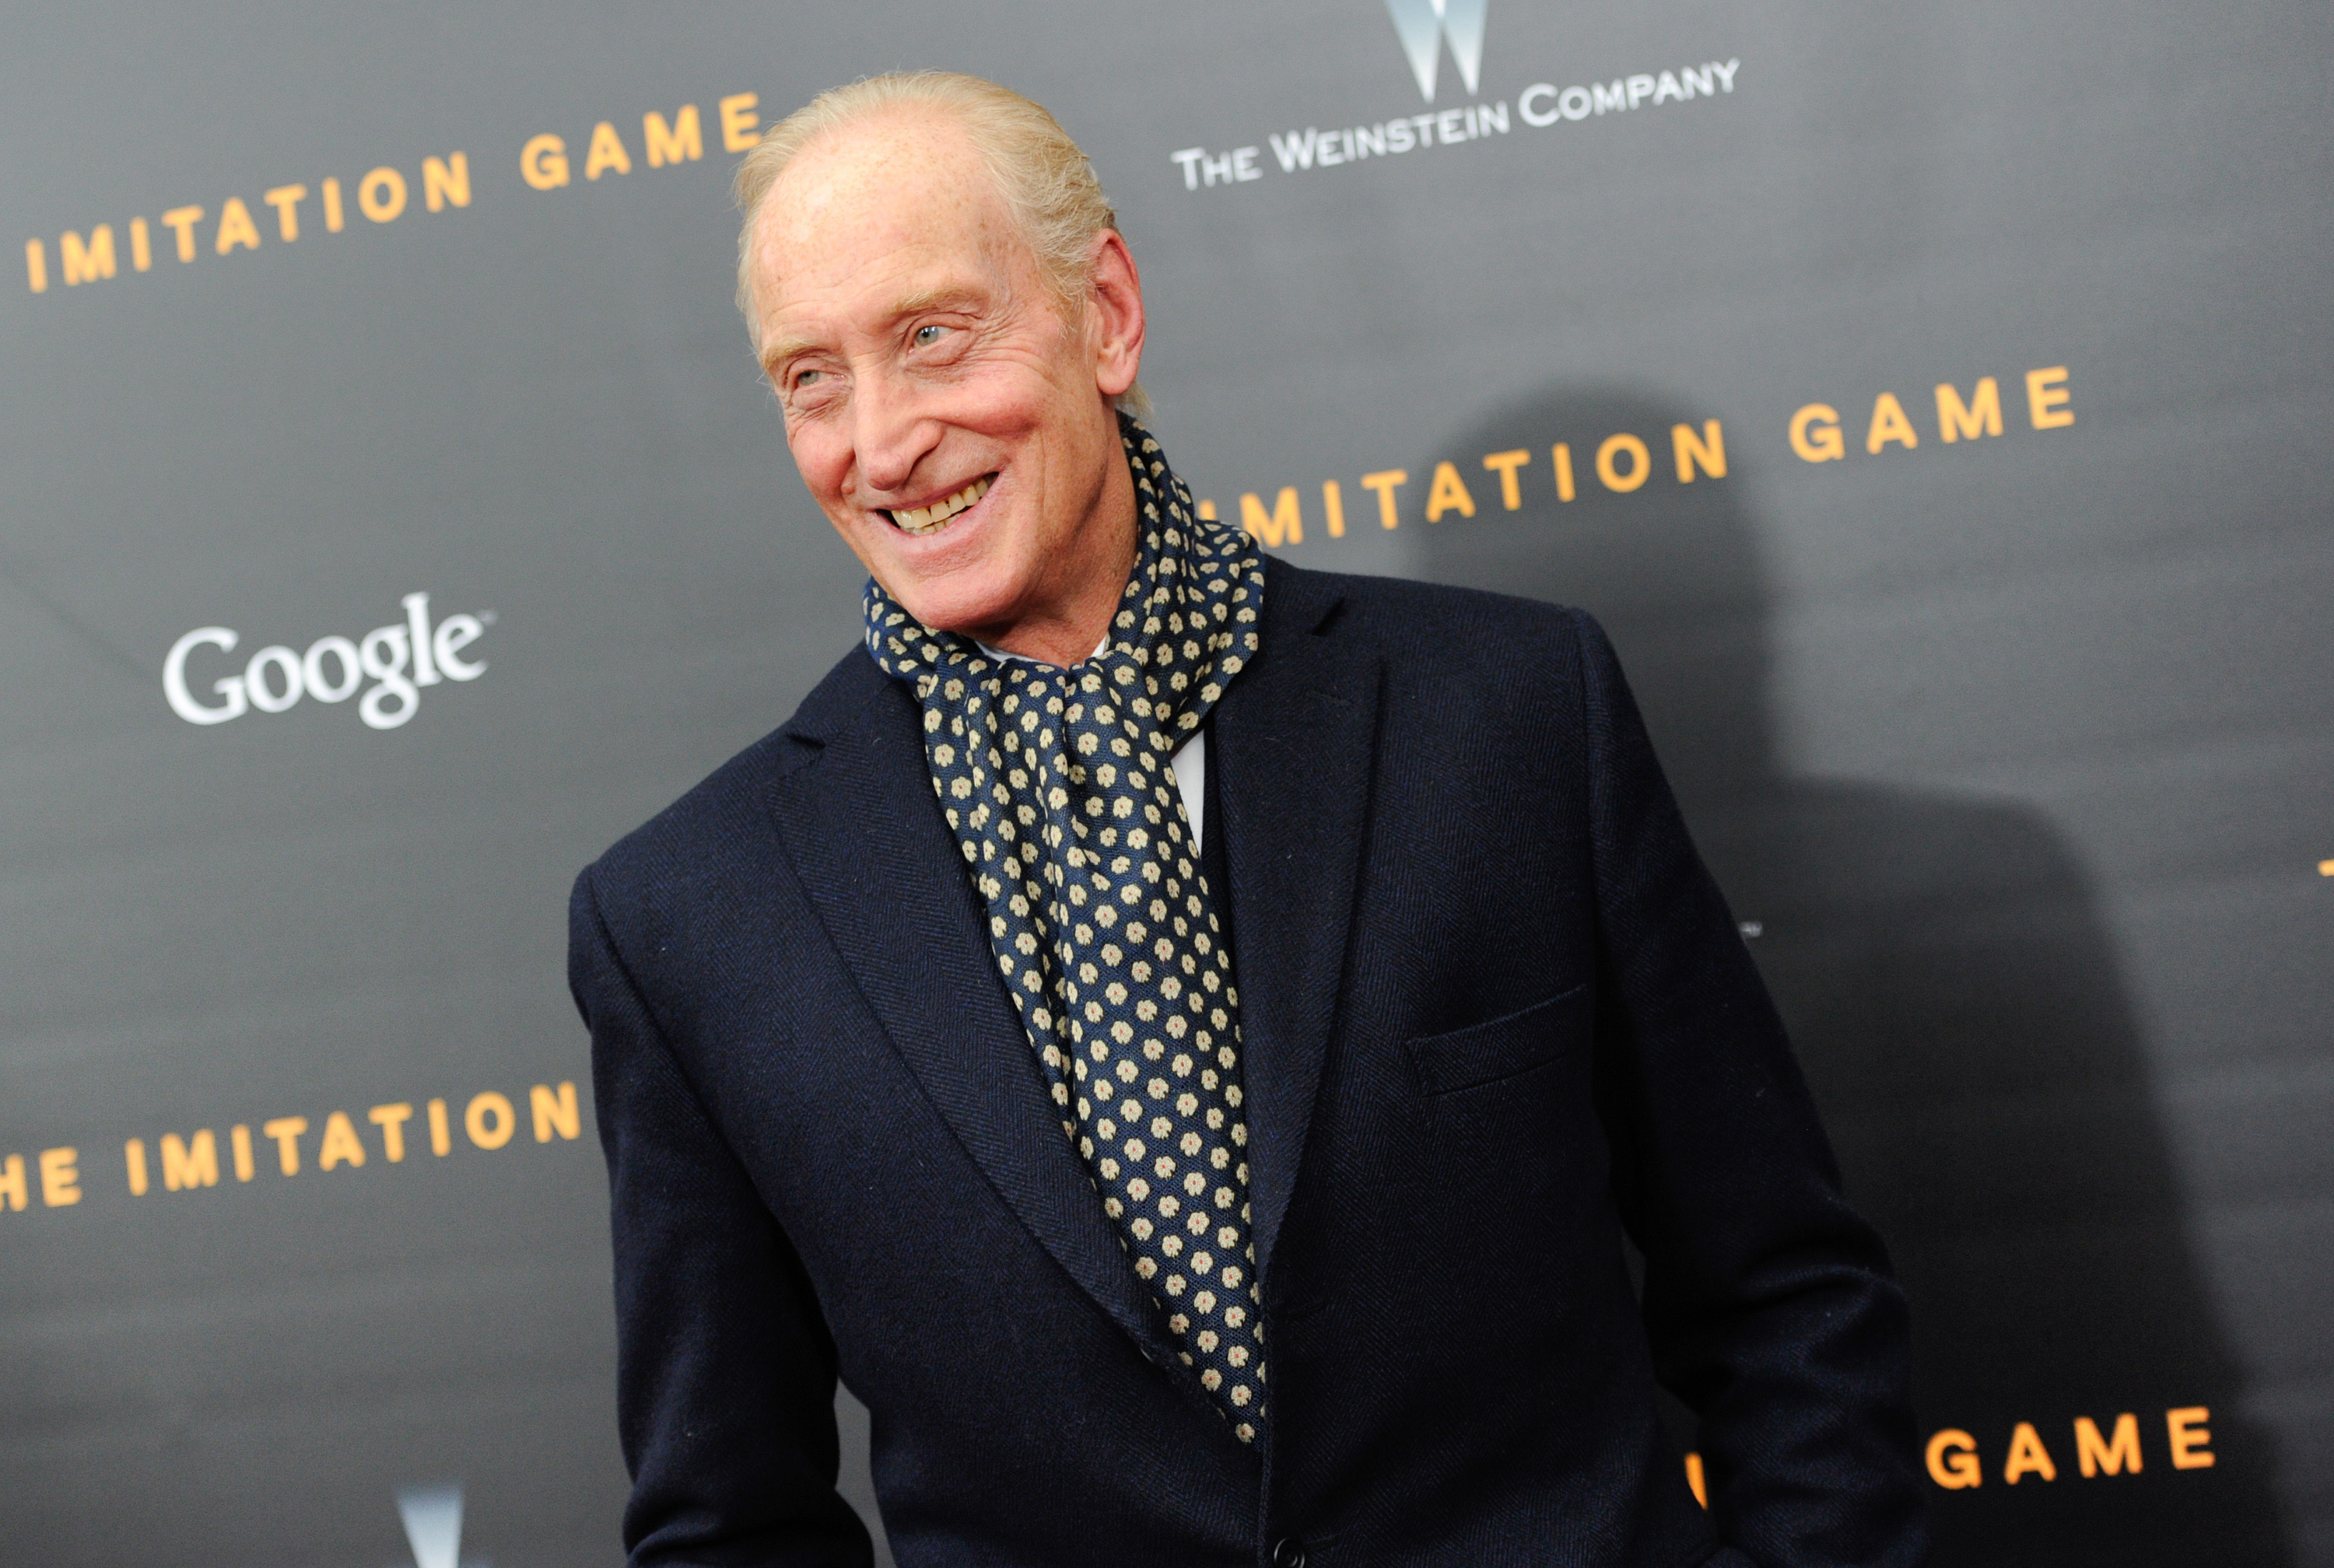 Actor Charles Dance attends the premiere of  The Imitation Game  at Ziegfeld Theatre on Monday, Nov. 17, 2014, in New York. (Photo by Evan Agostini/Invision/AP)